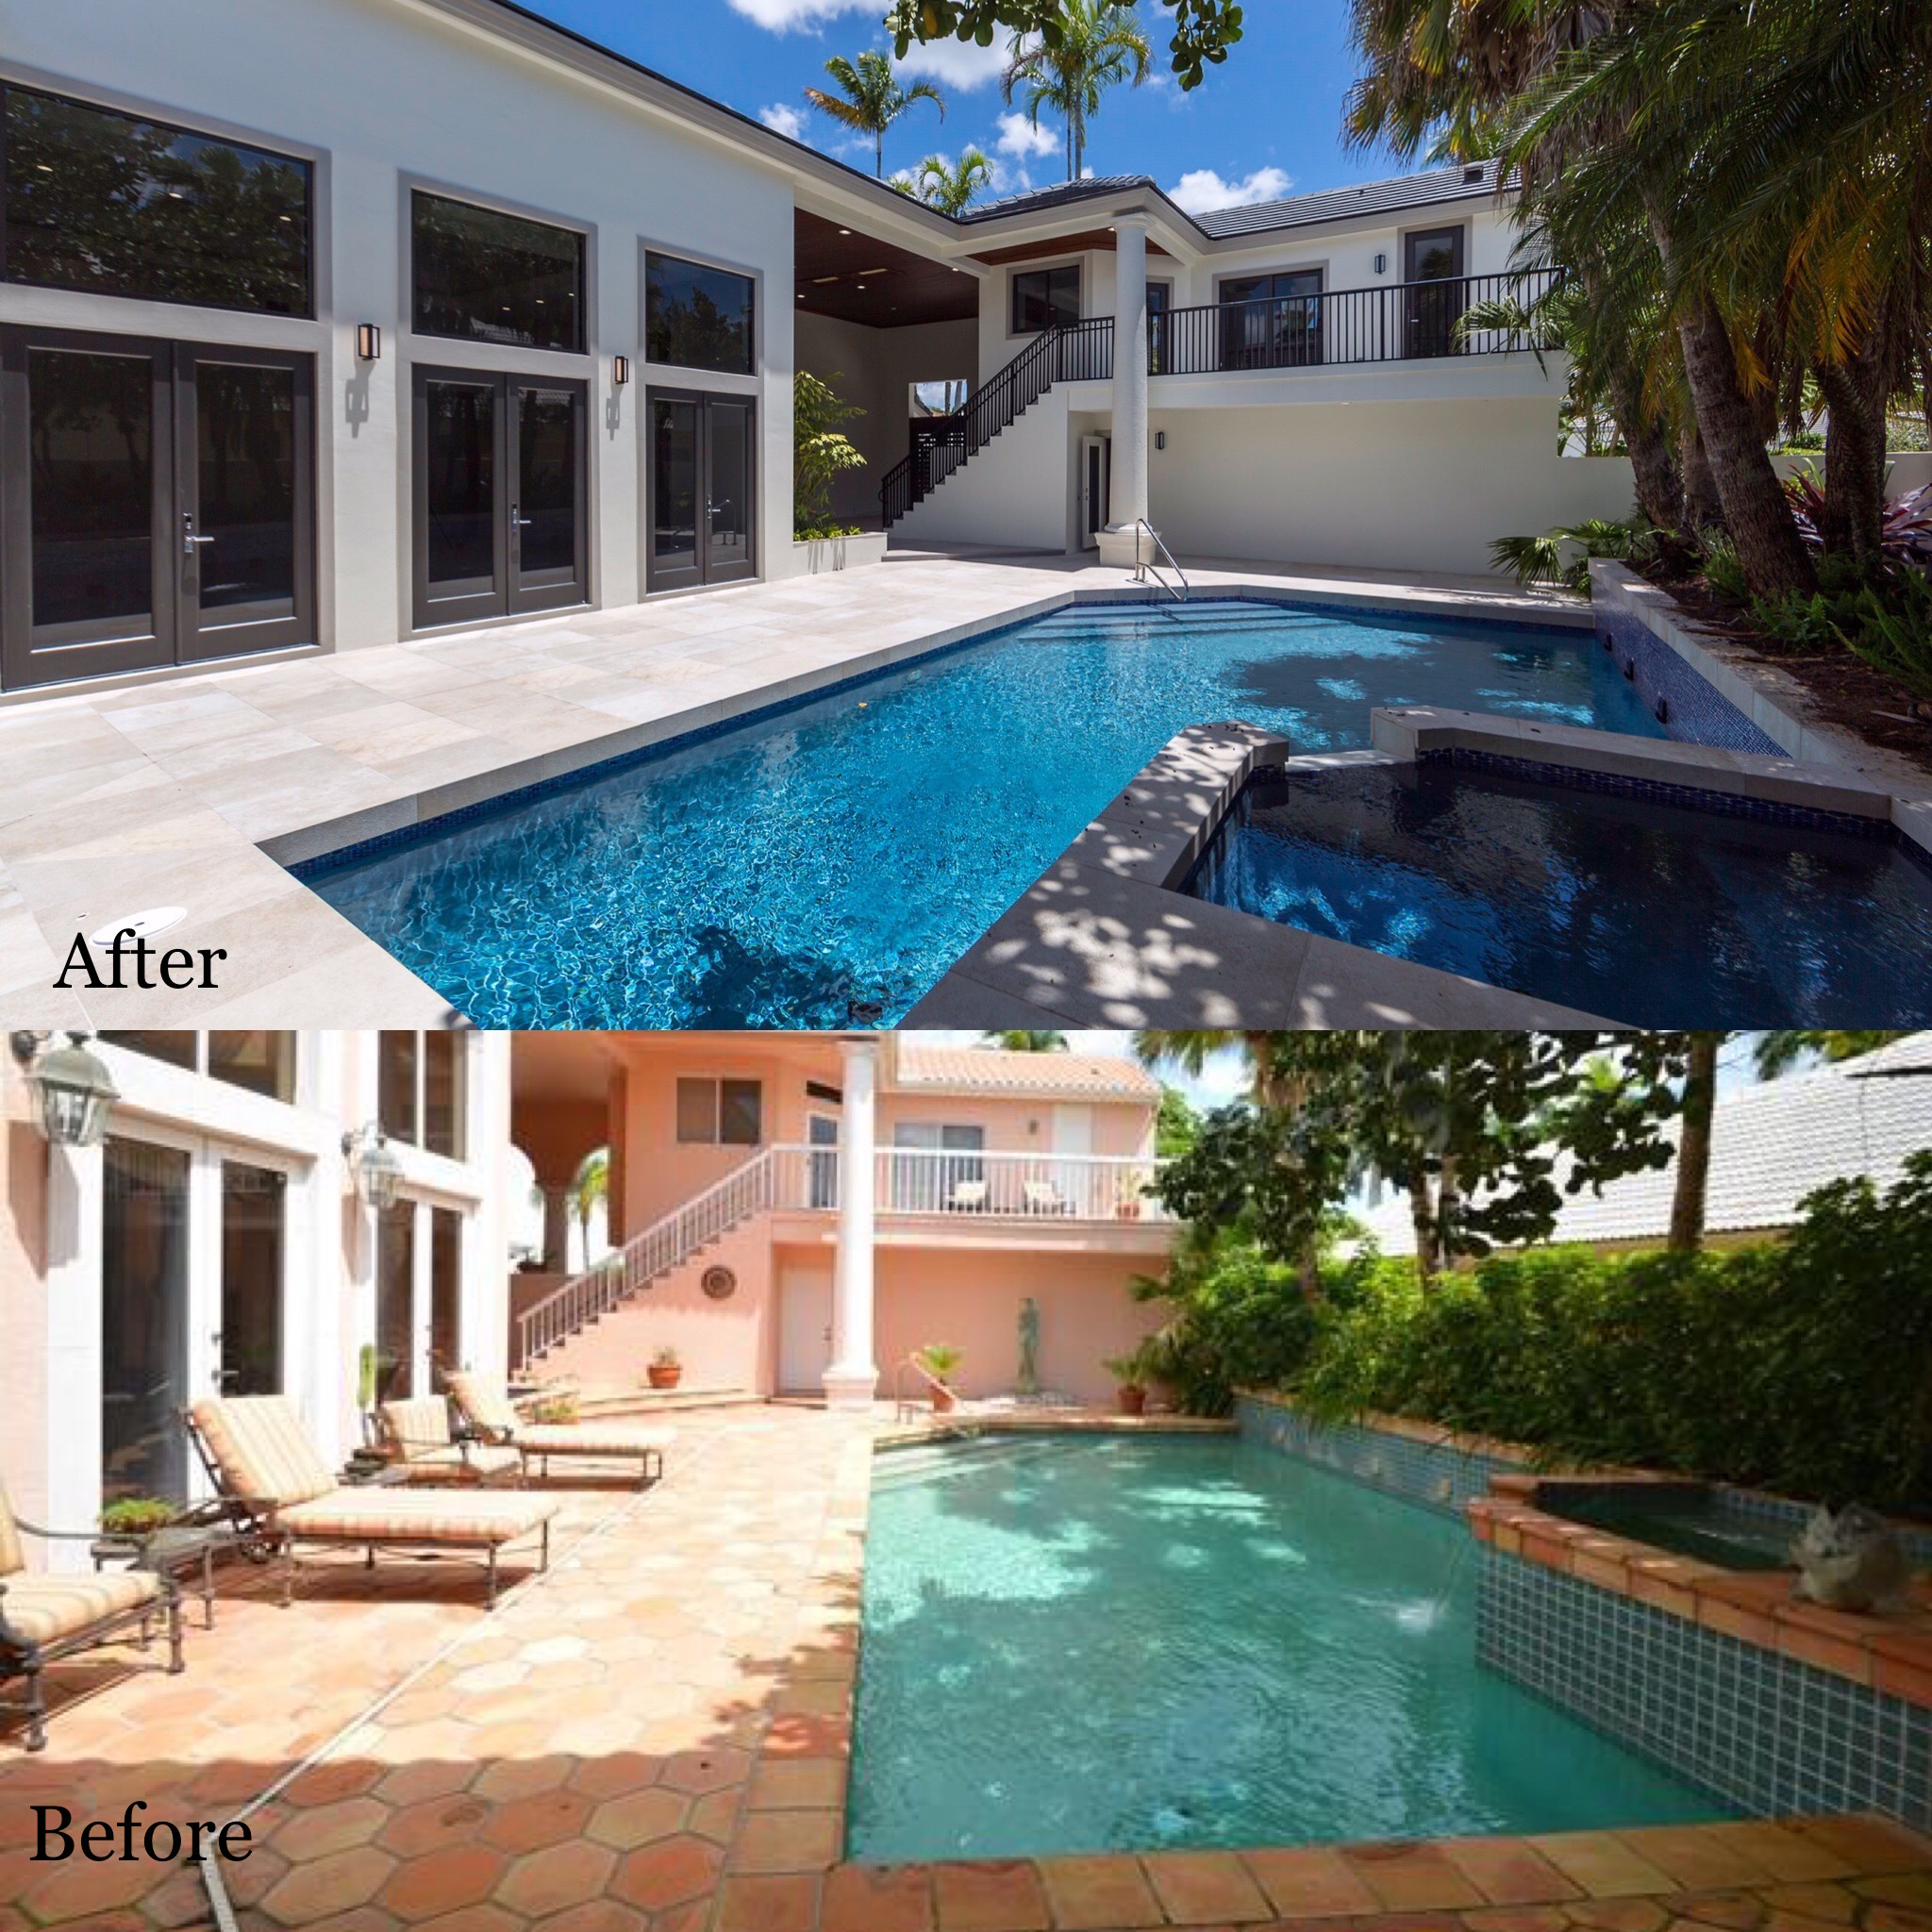 mag real estate & development construction before & after general contractor builder renovation south florida boca raton new custom luxury home for sale interior design st. andrews country club 2.jpg